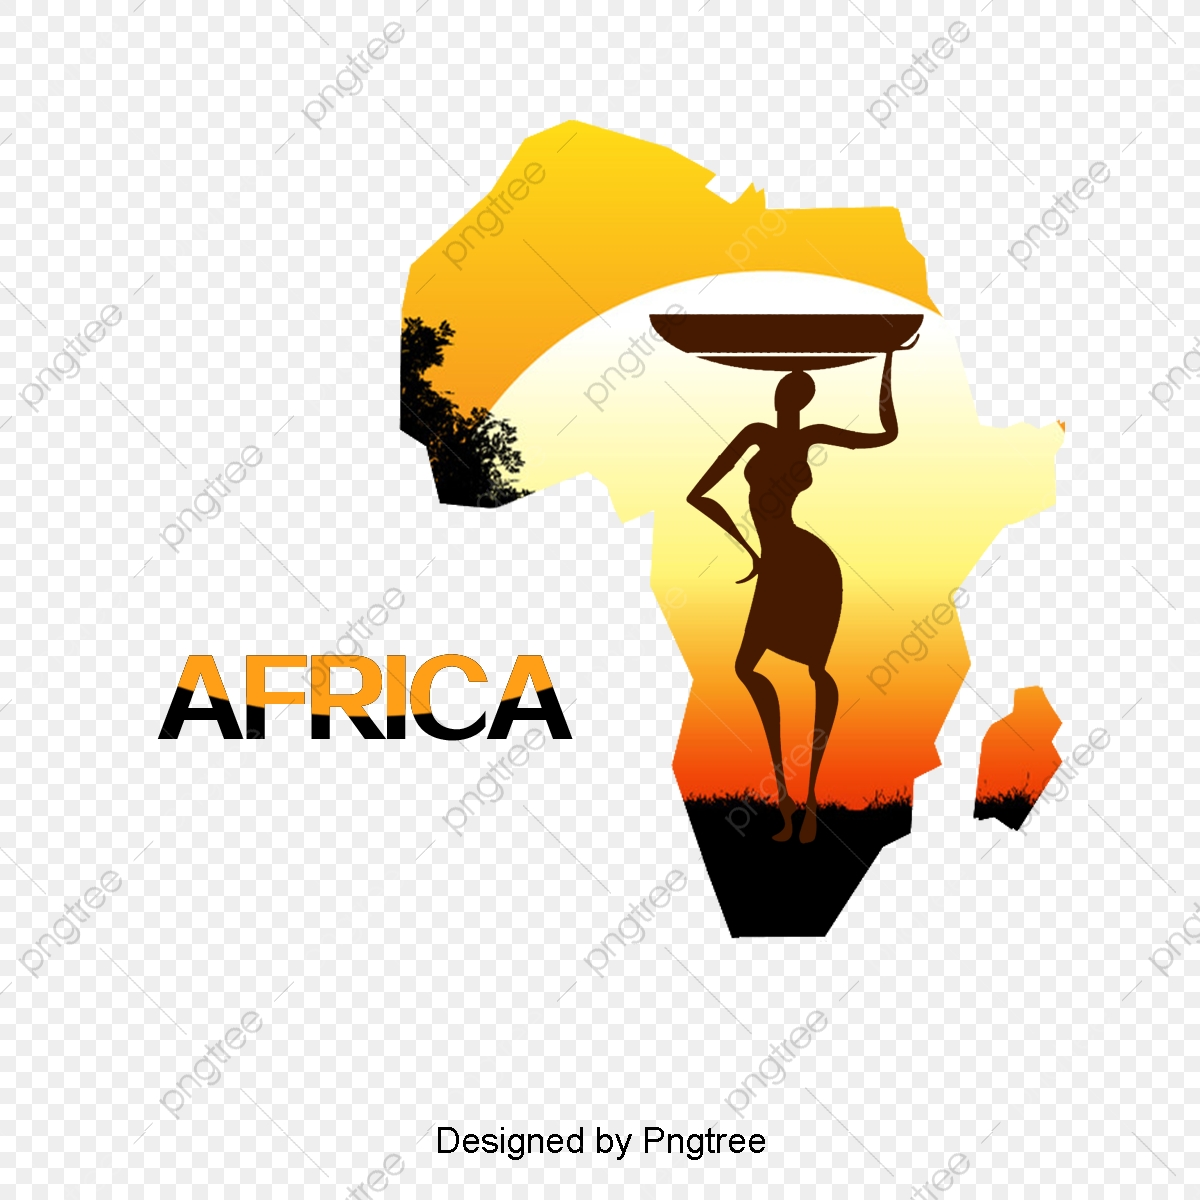 Vector Map Of Africa, Creative, Africa, Map PNG Transparent